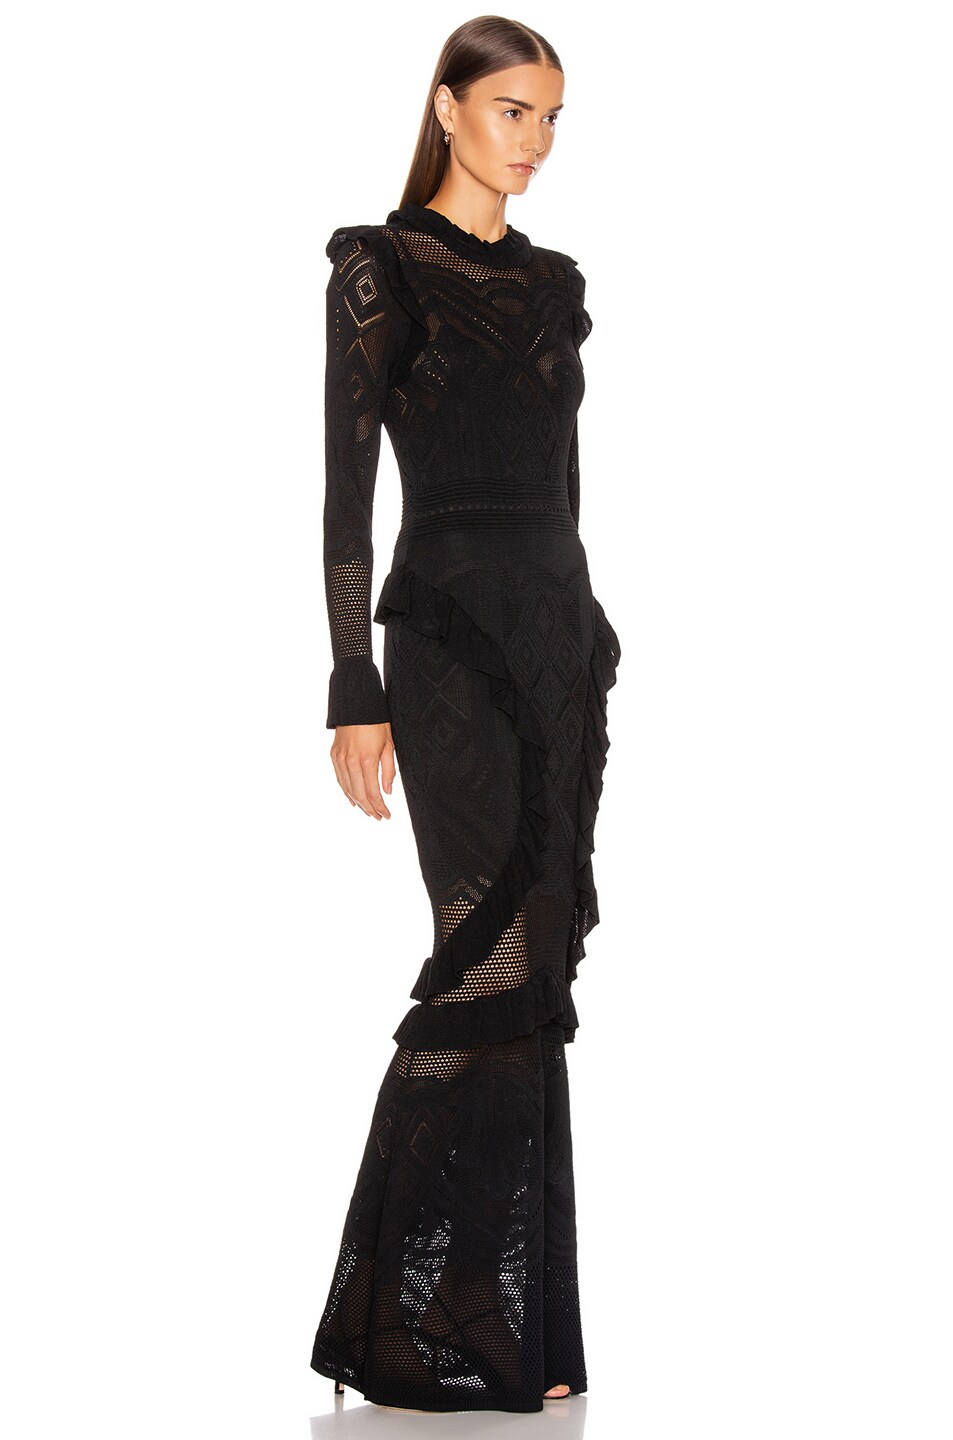 Image 2 of Alexis Ceecee Dress in Black